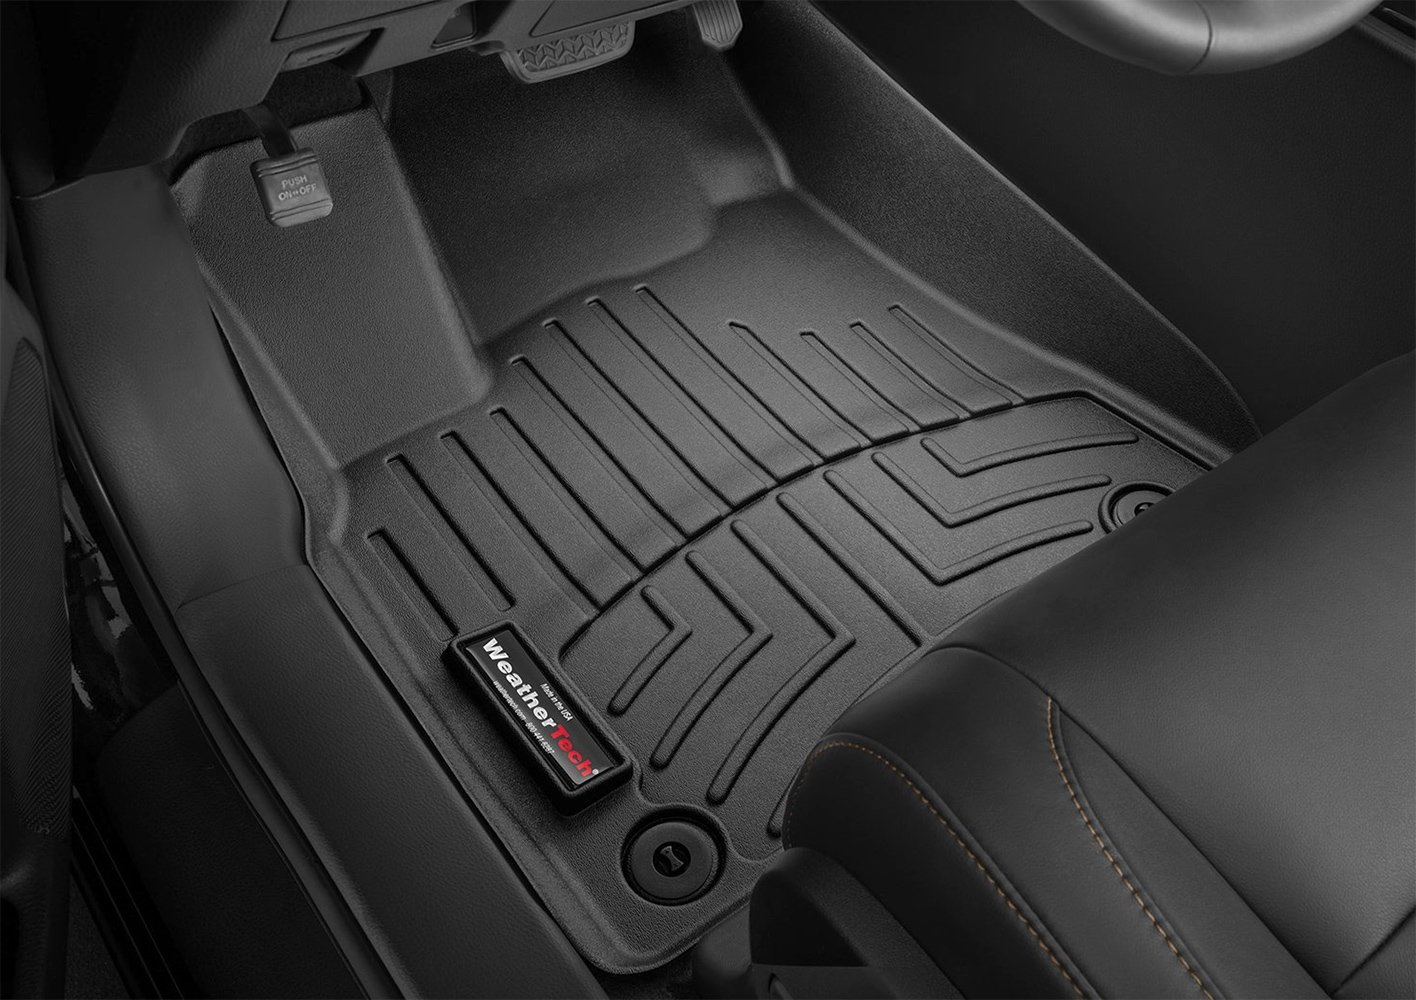 mats mat rear front black weathertech digitalfit mustang floor